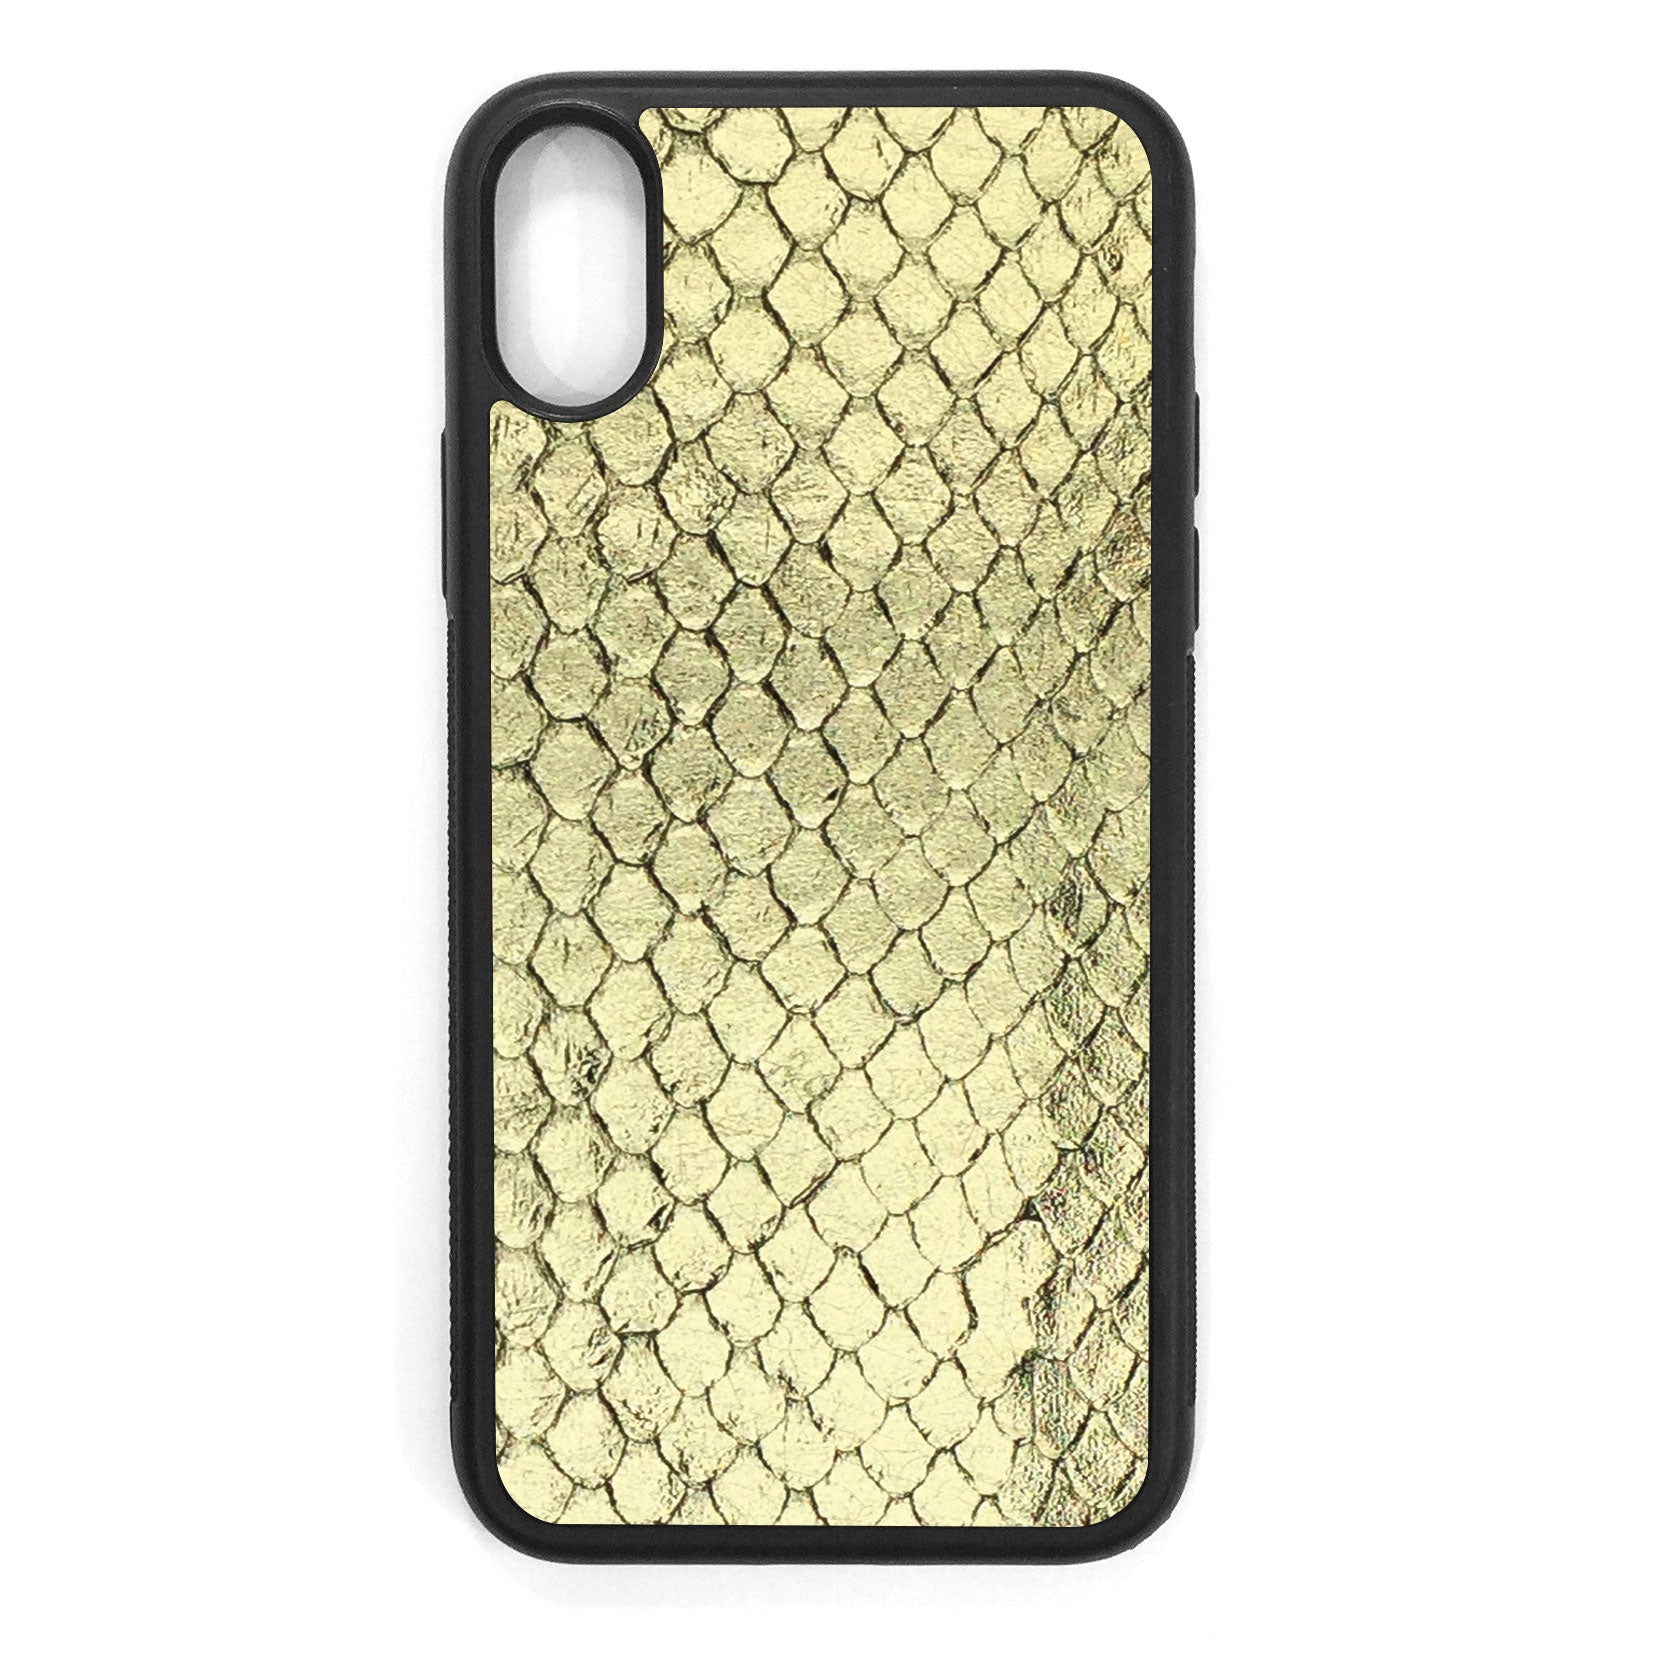 Gold Foil Anaconda iPhone X Leather Case